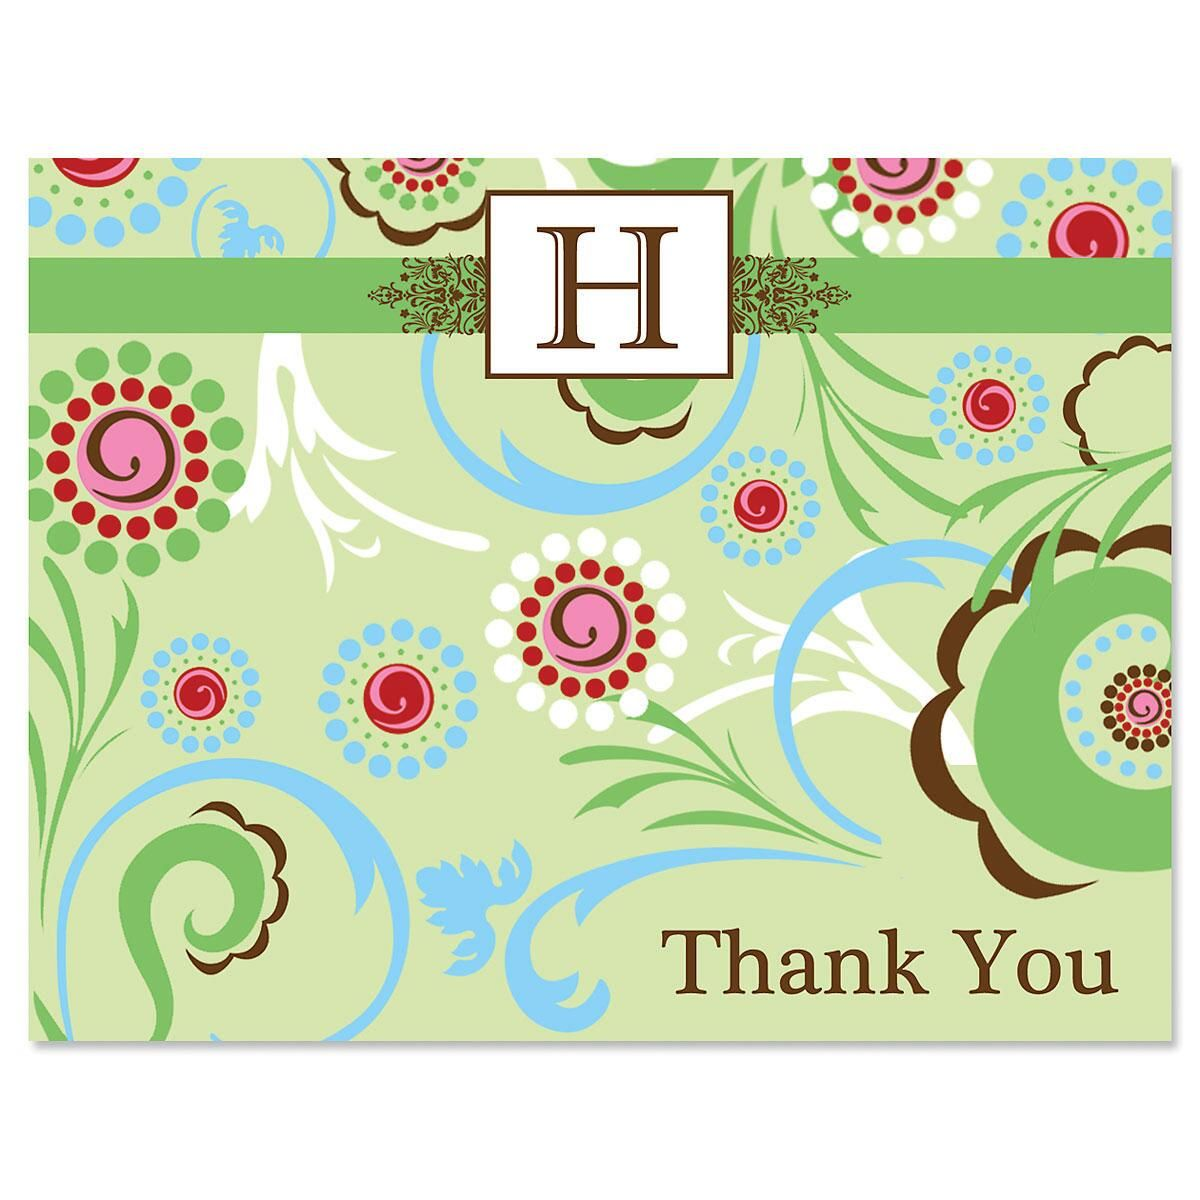 Fanciful Thank You Cards